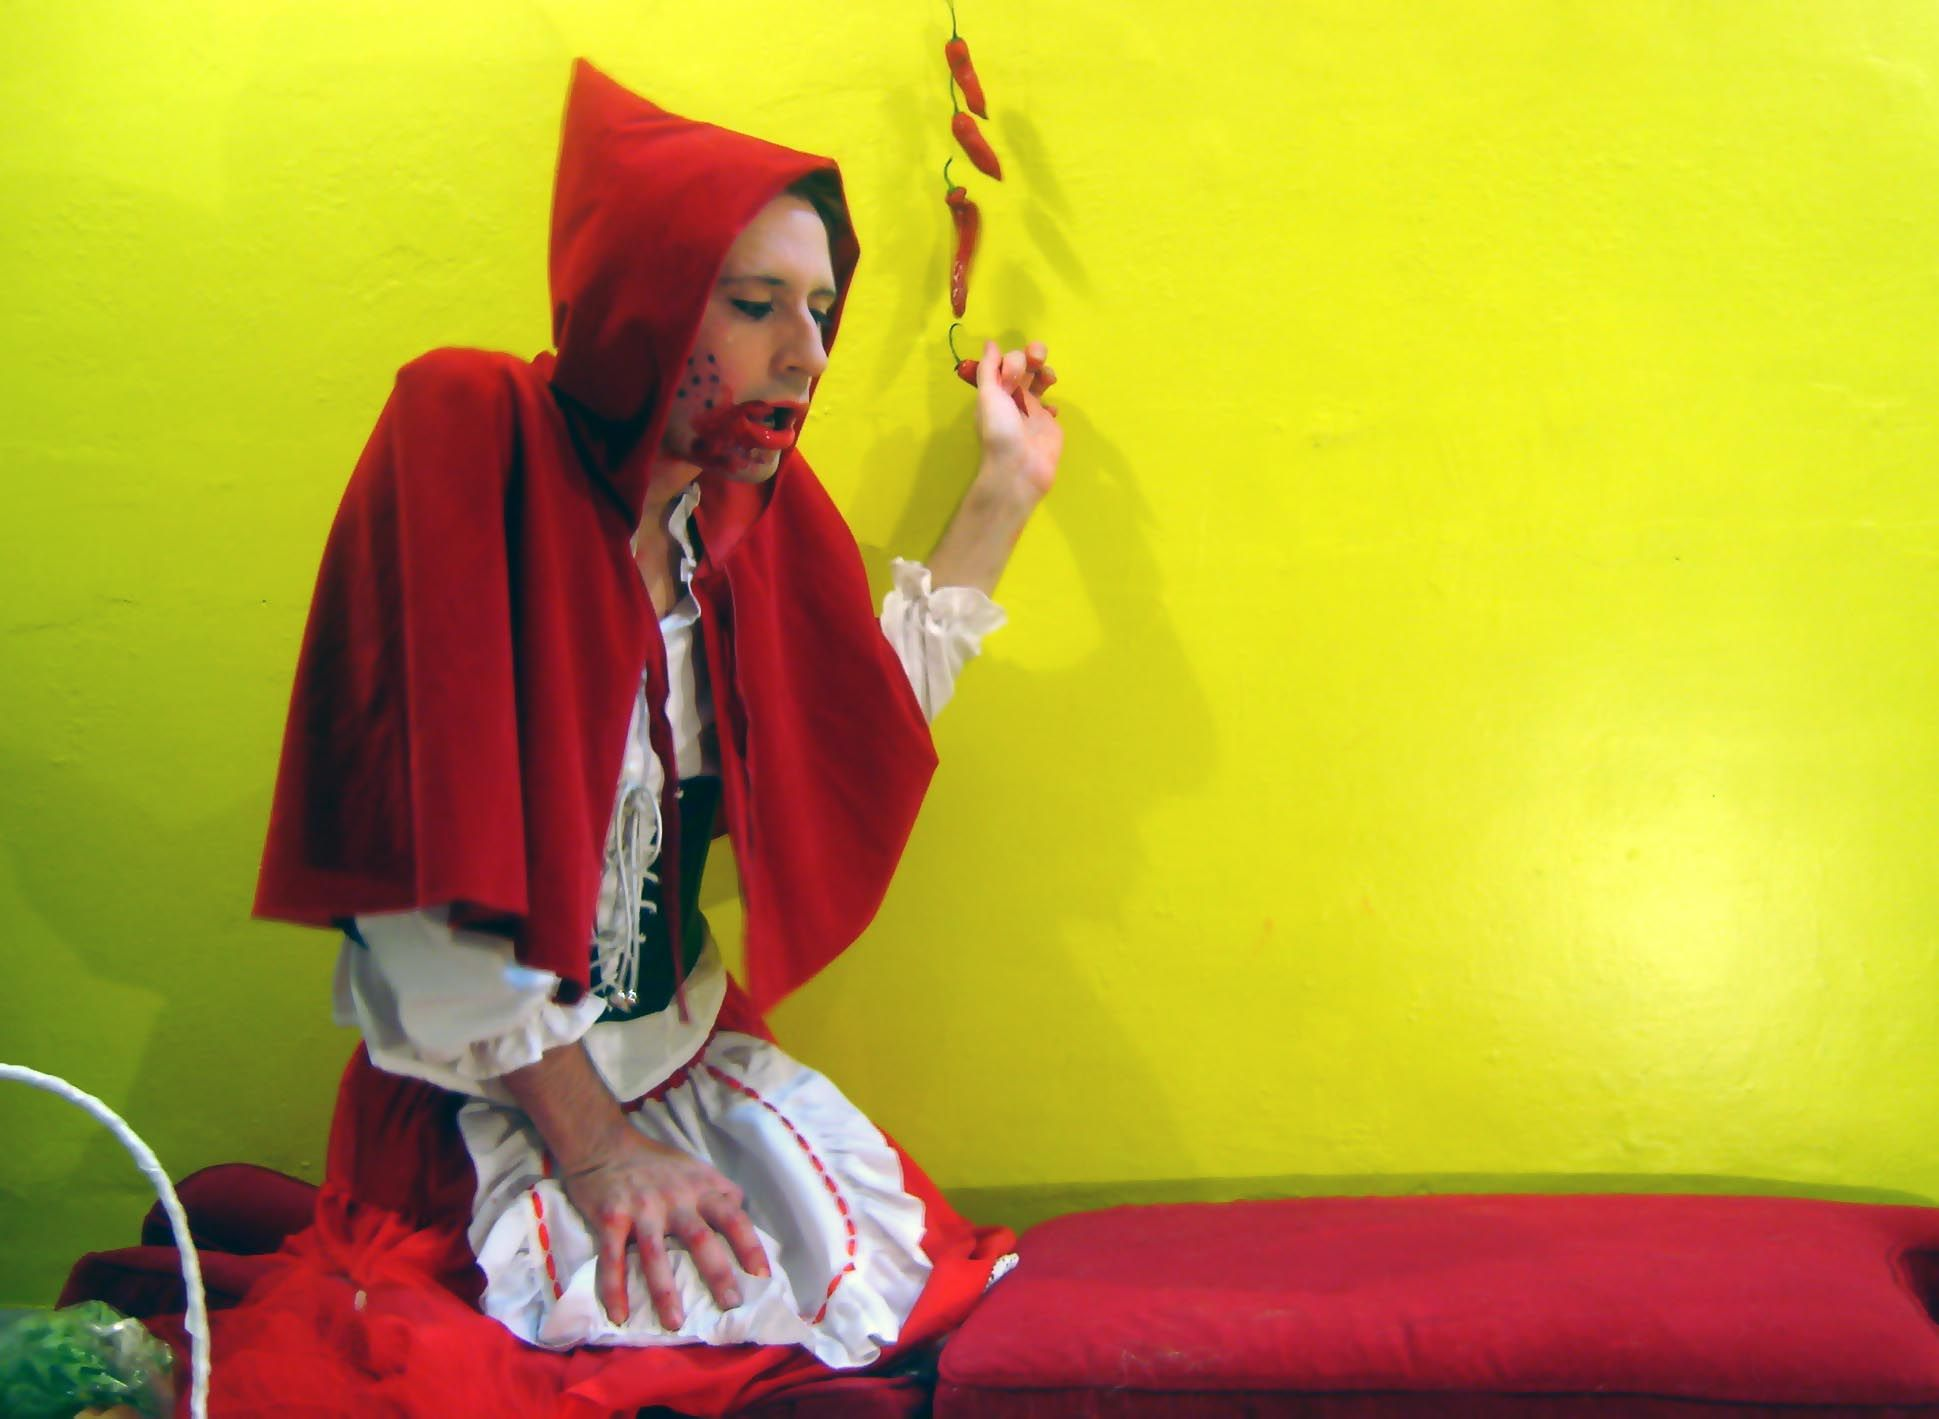 Blitto as red Riding Hood by Nina Plez - 2008